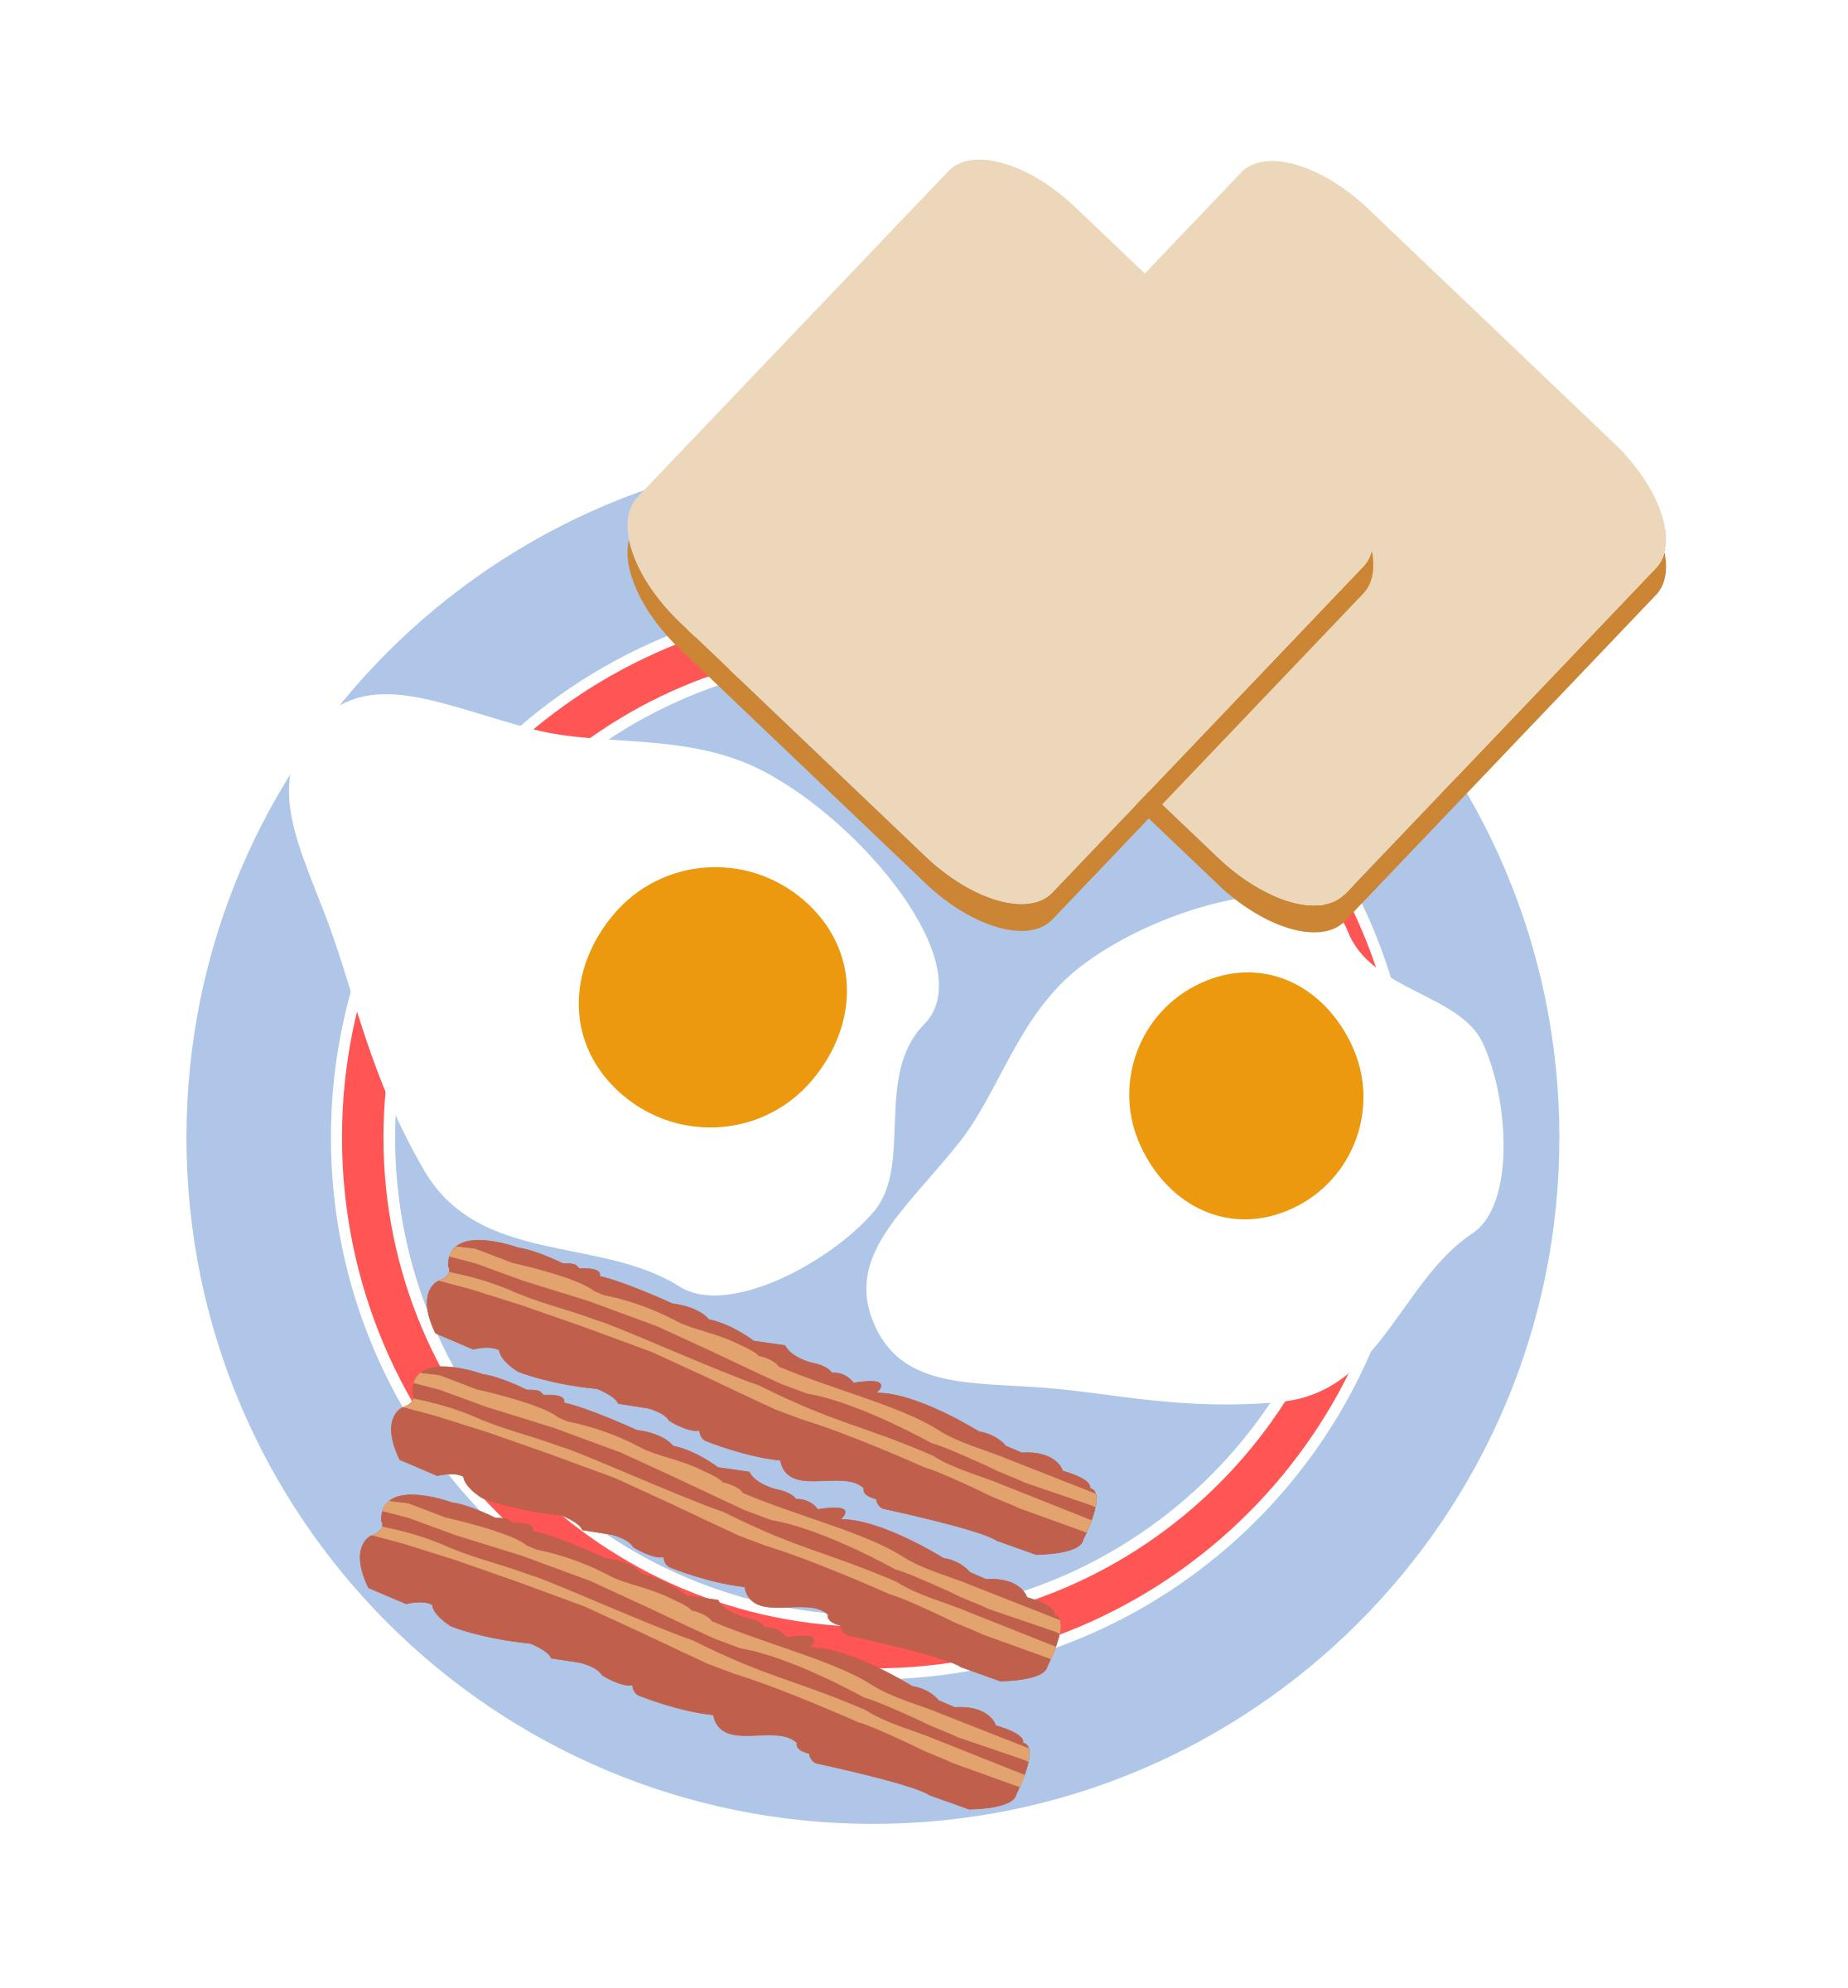 Bacon clipart breakfast. Food billionaires icons png